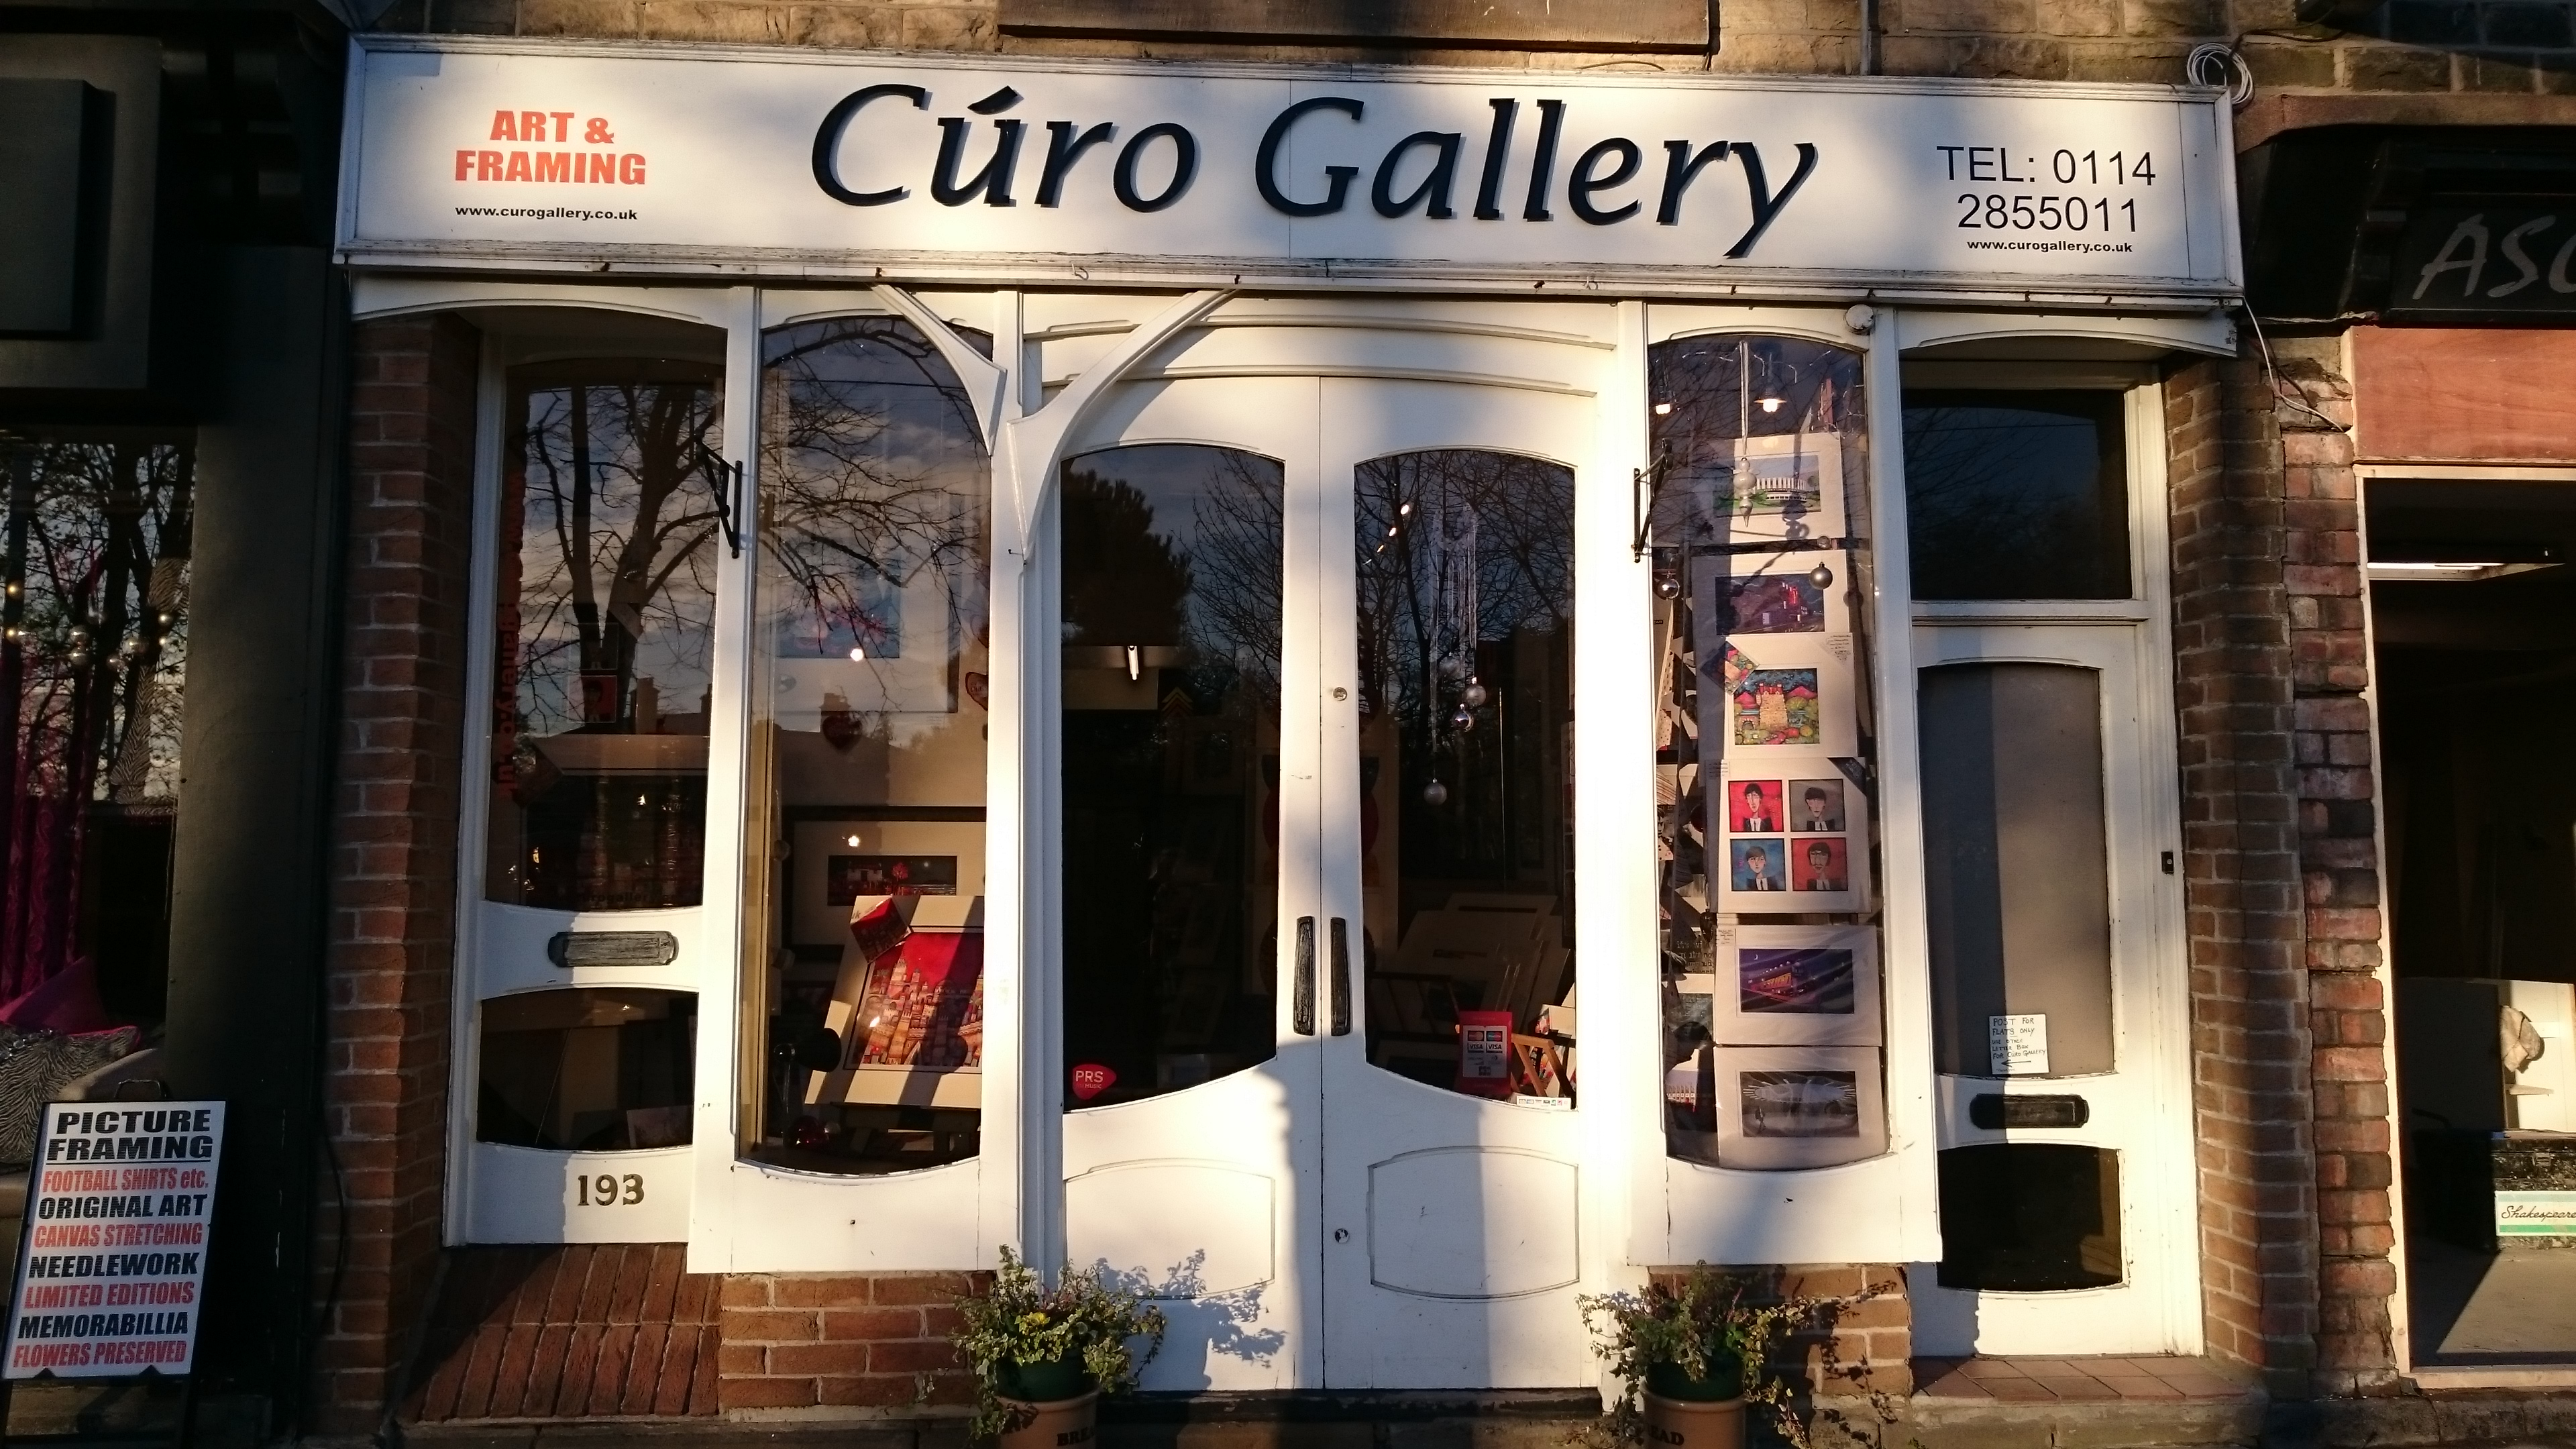 Curo Gallery shop front